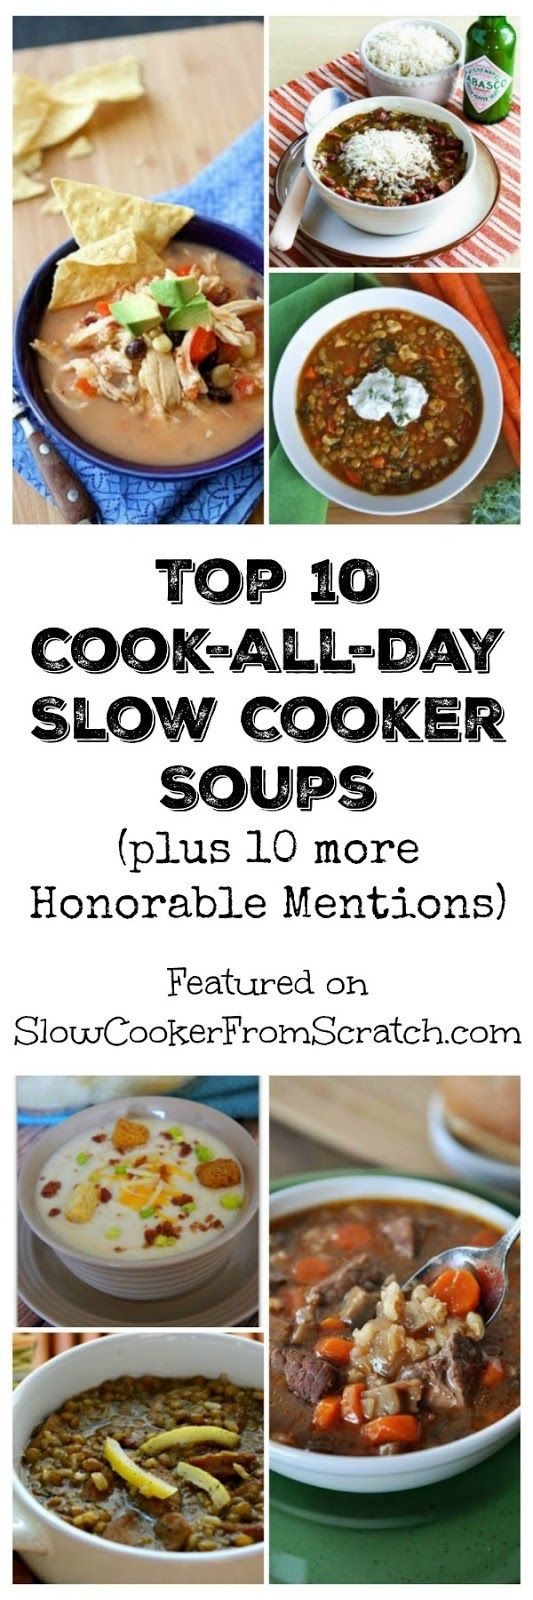 For those days when you don't have time to cook, here are the Top Ten Cook-All-Day Soups from Slow Cooker from Scratch (plus 10 Honorable Mentions). Click here to PIN this collection of Cook-All-Day Soups. Click here for 20 Cook All Day Slow Cooker Dinner Recipes! Soup weather is here, and even though I don't like...Click to continue reading...